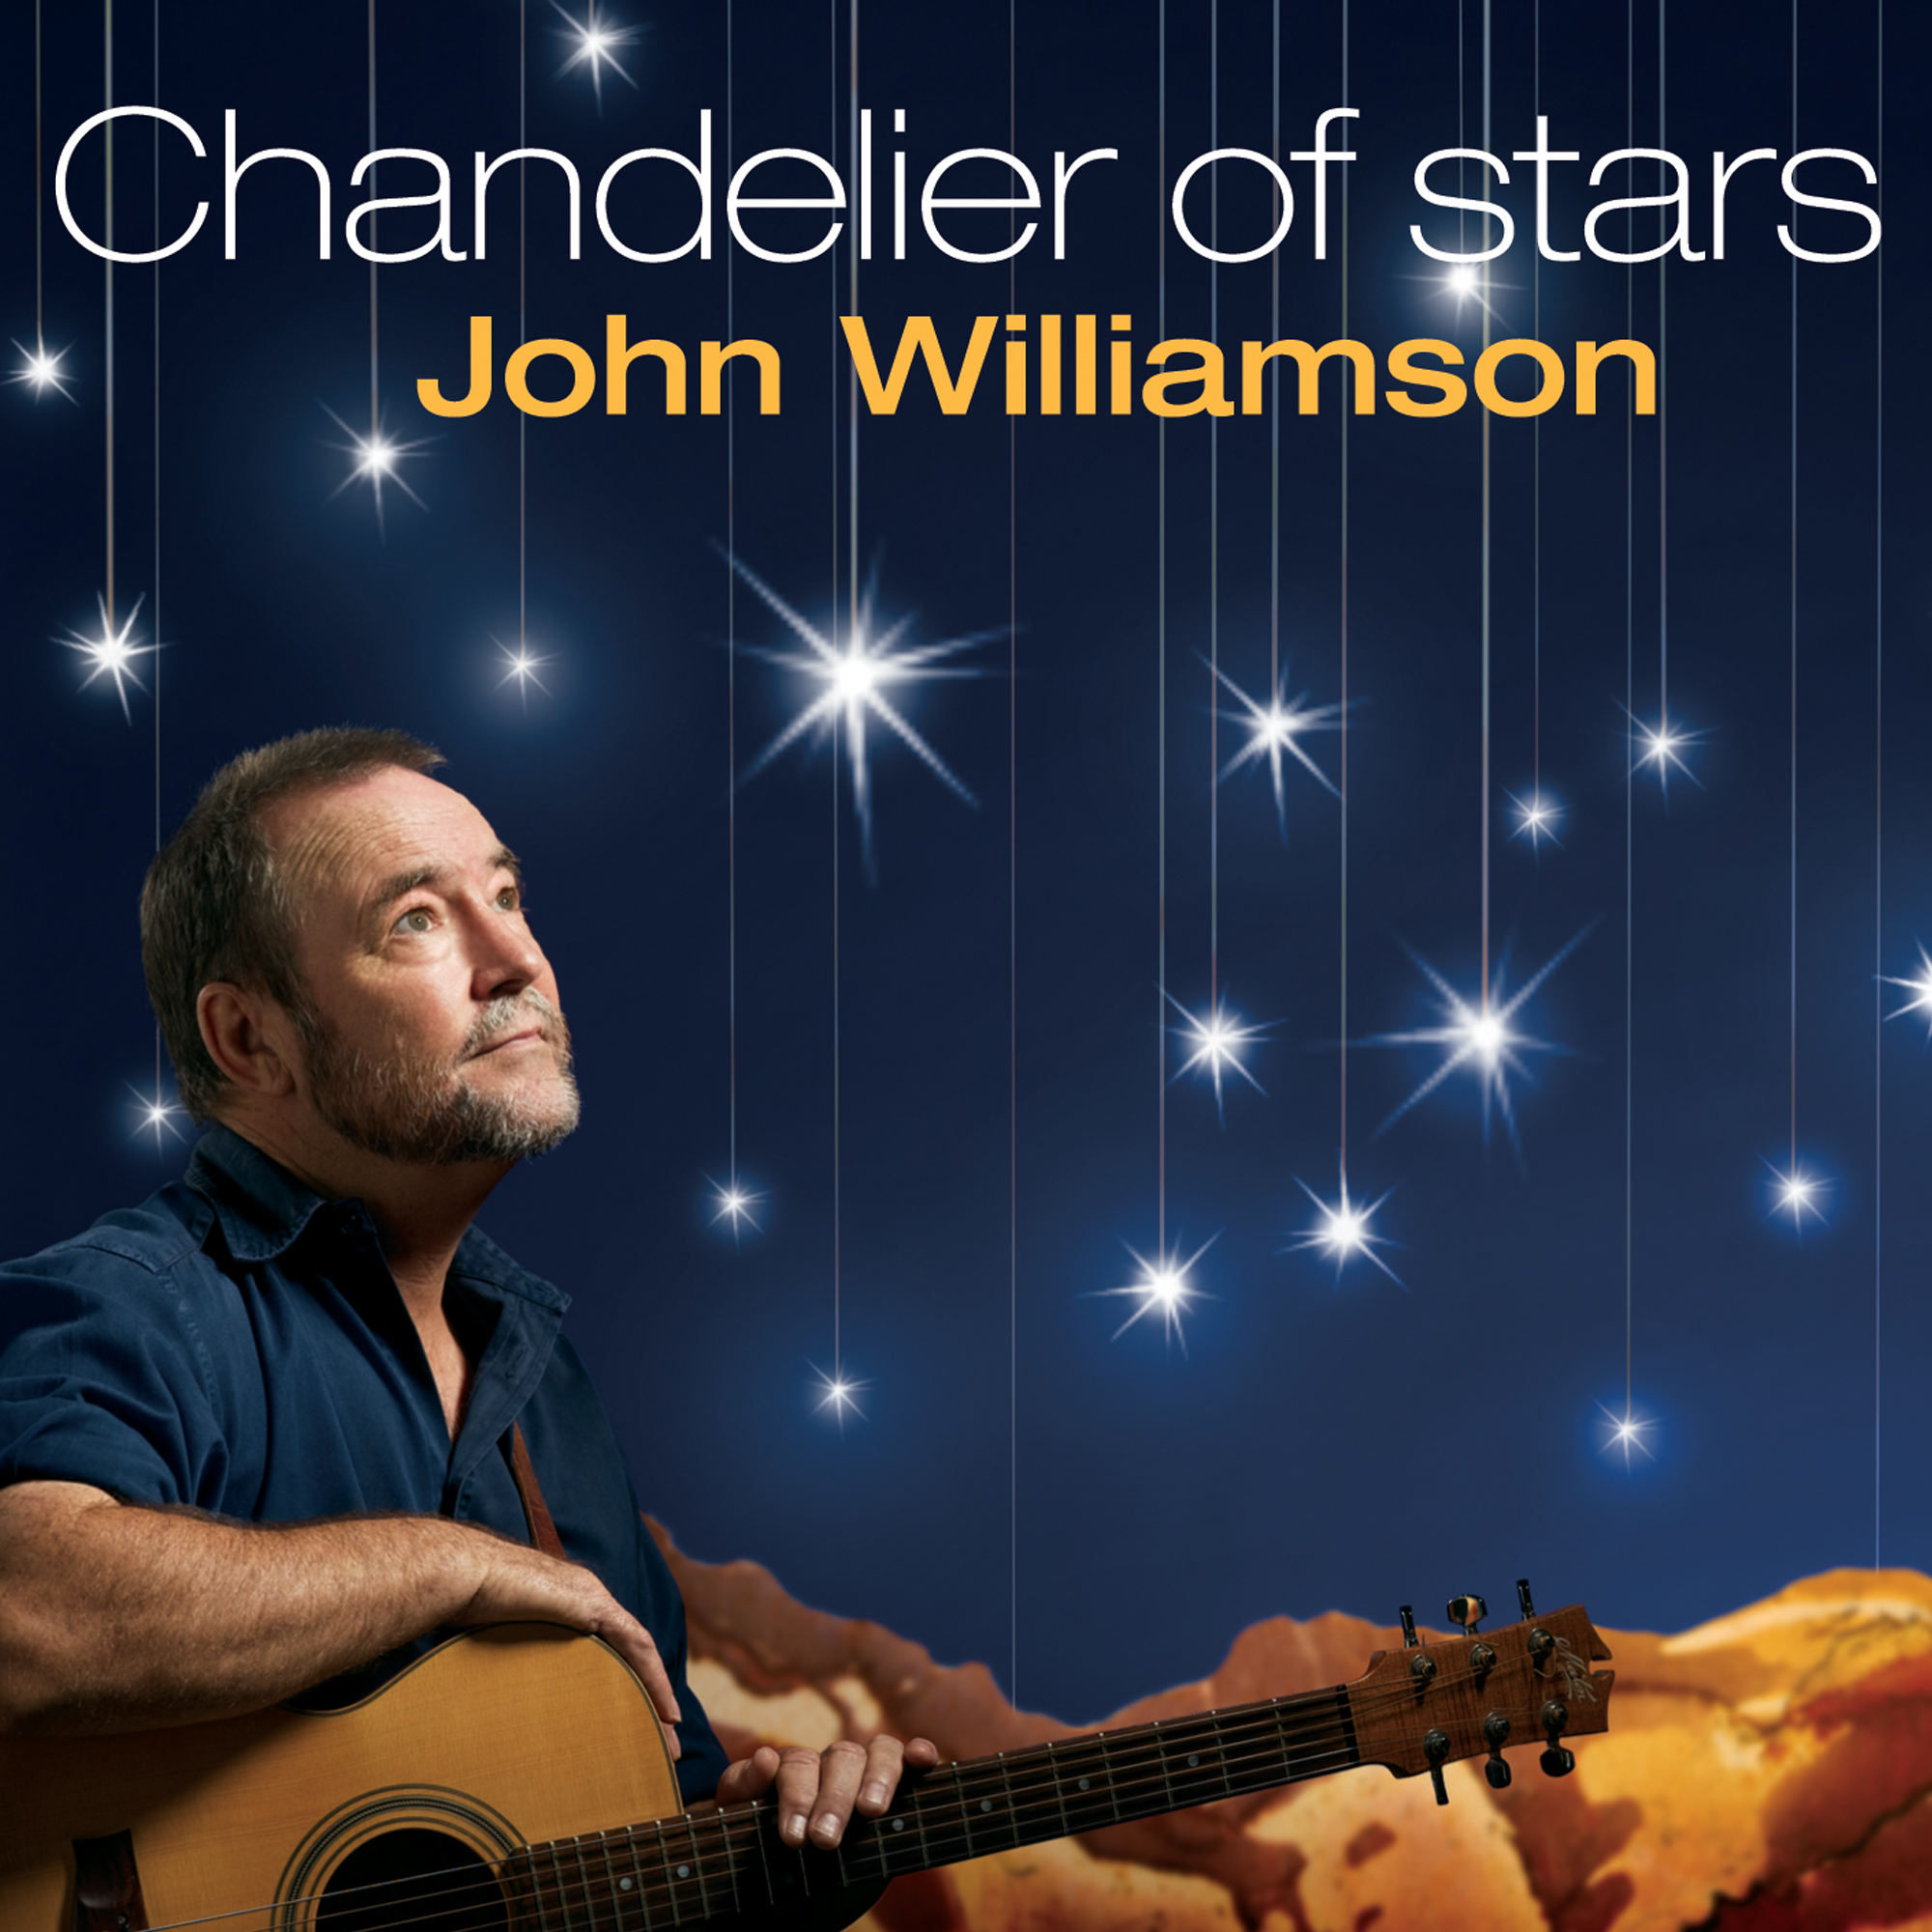 Chandelier of stars cd dvd deluxe edition john williamson chandelier of stars cd dvd deluxe edition arubaitofo Image collections